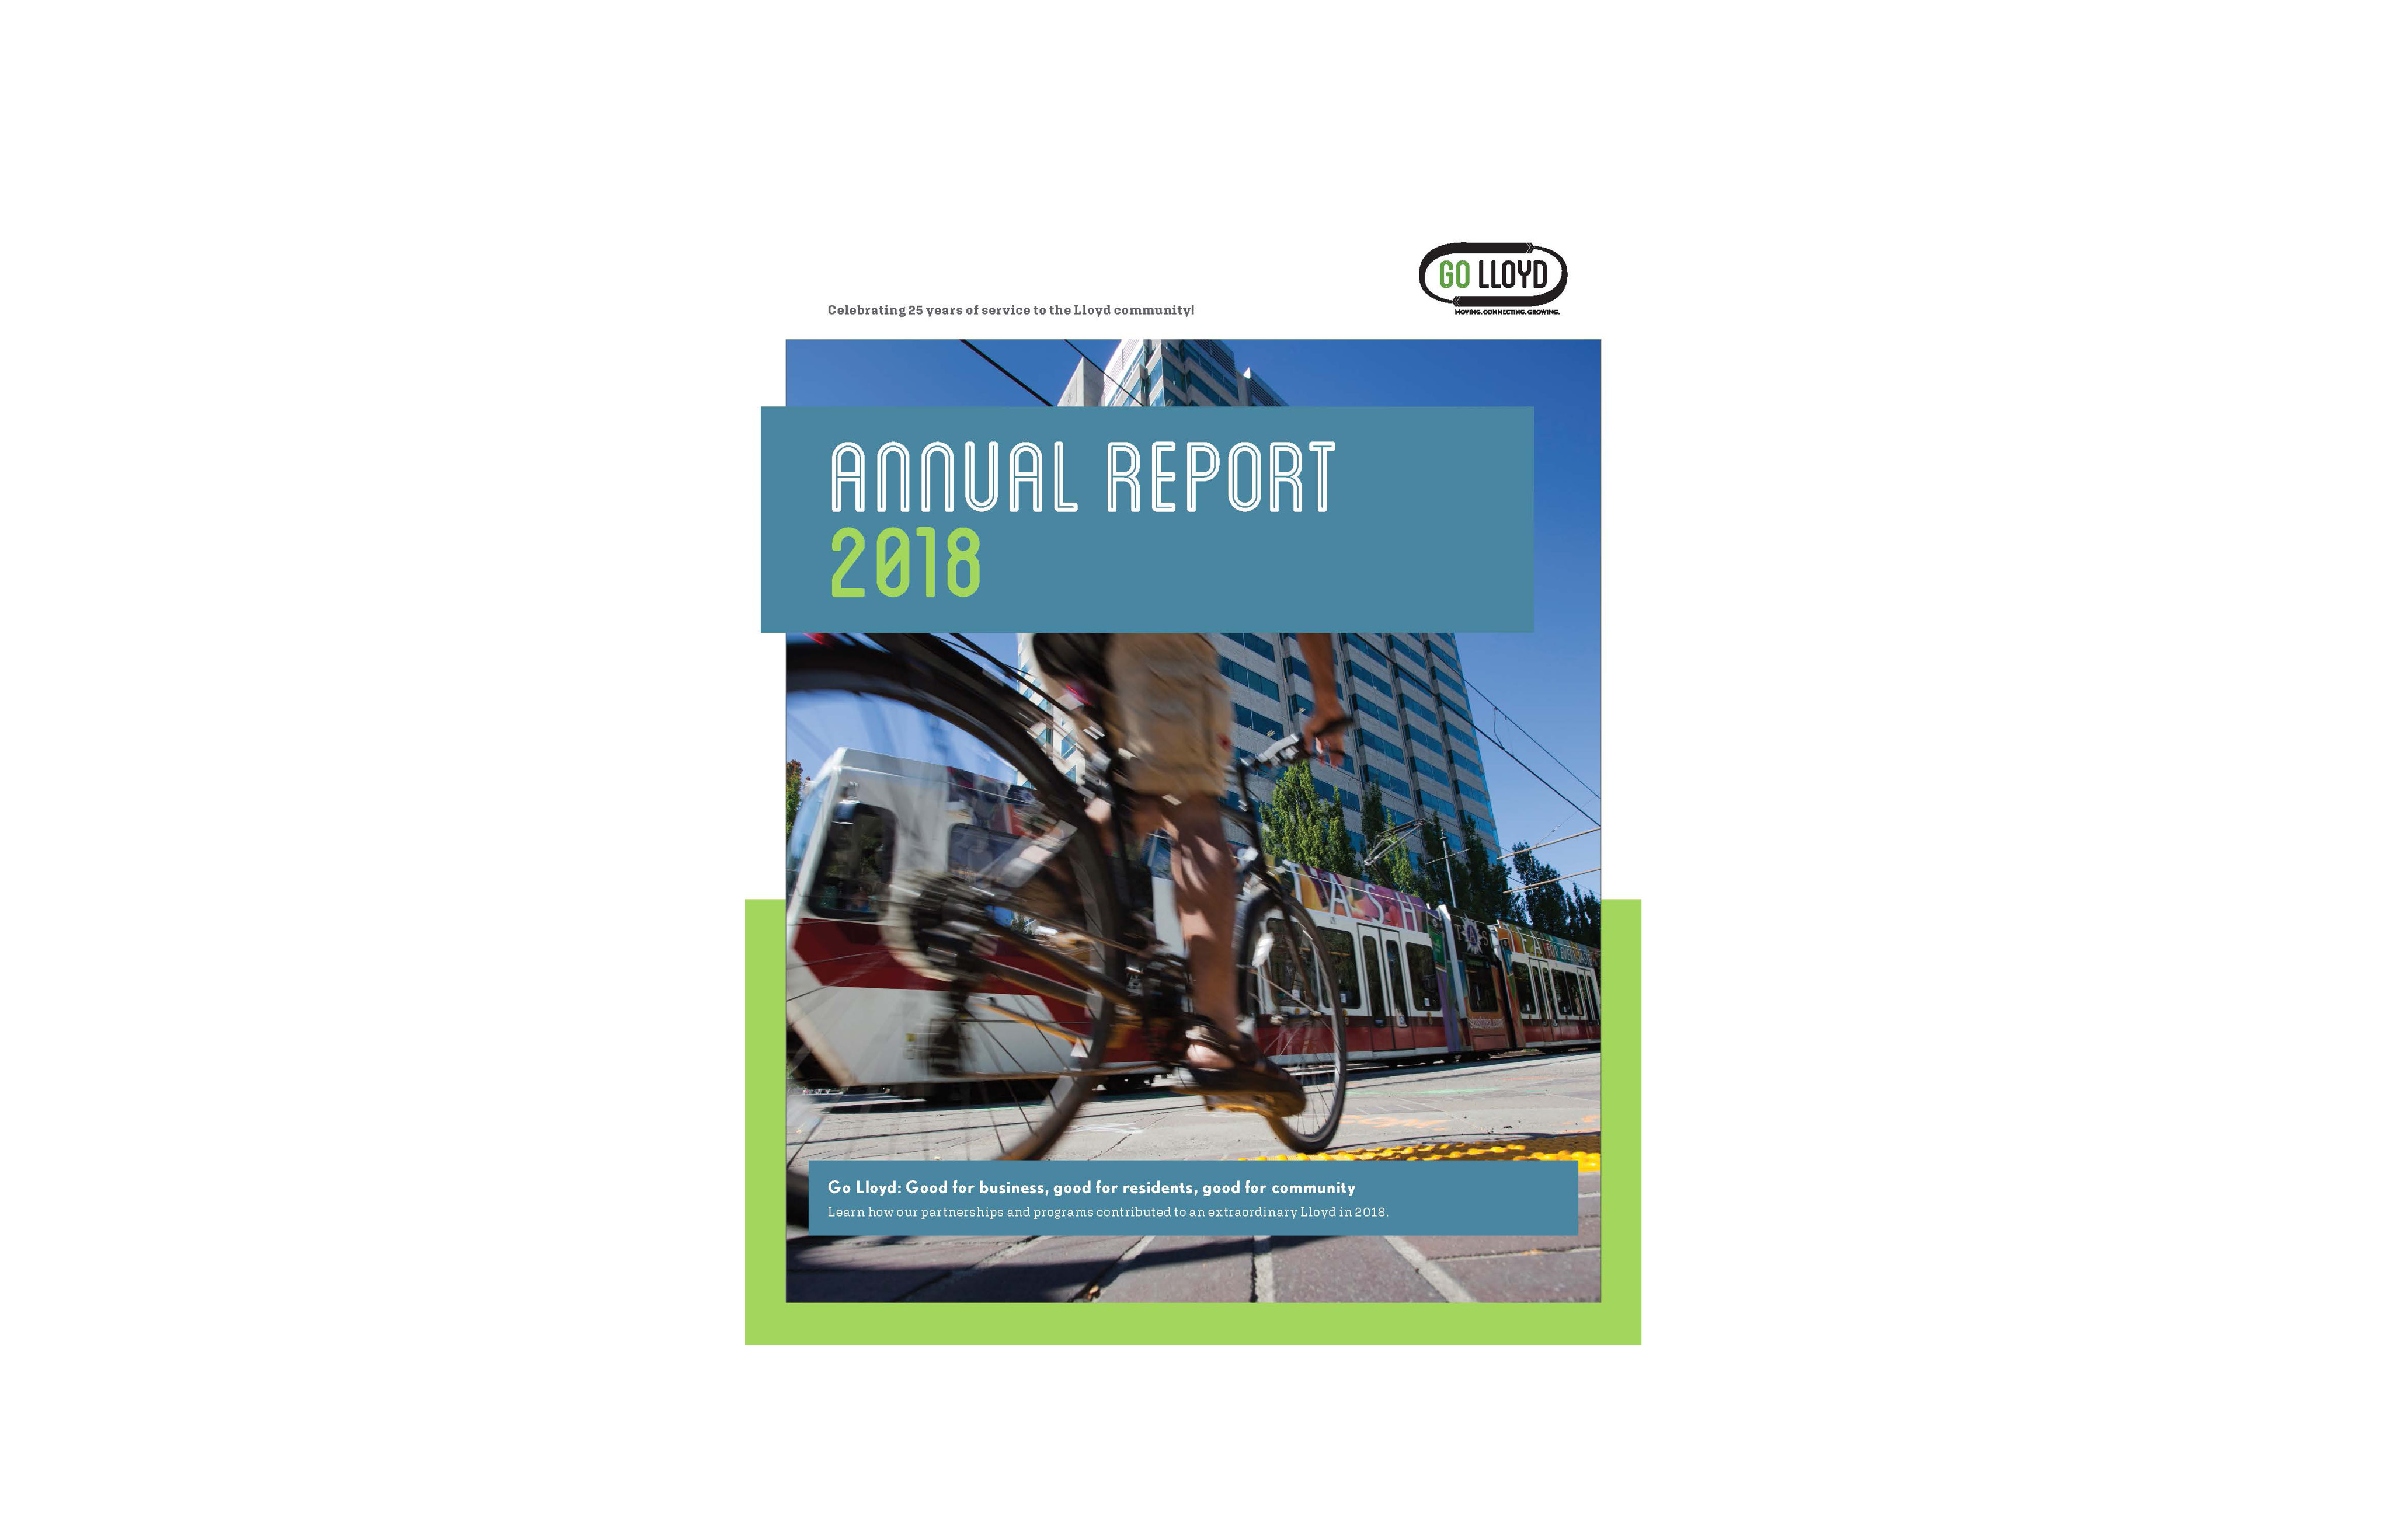 Go-Lloyd-Annual-Report_page-1